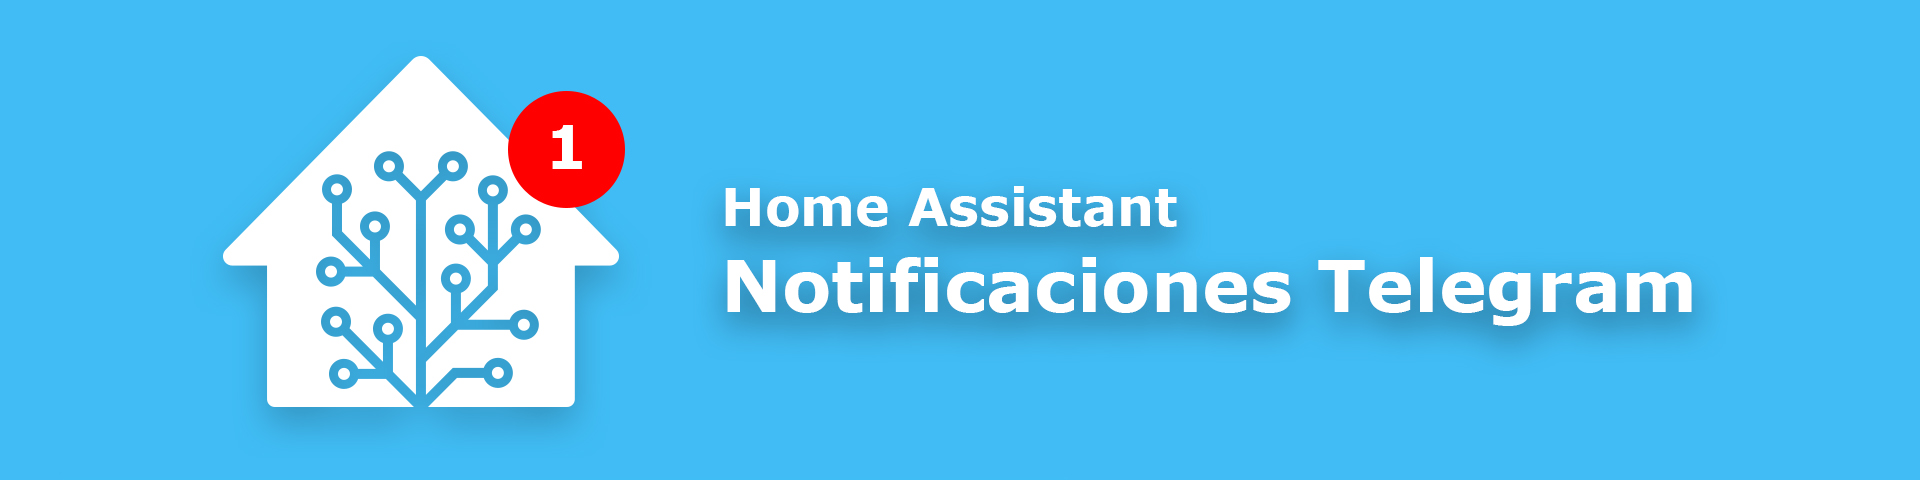 Notificaciones de Home Assistant en Telegram